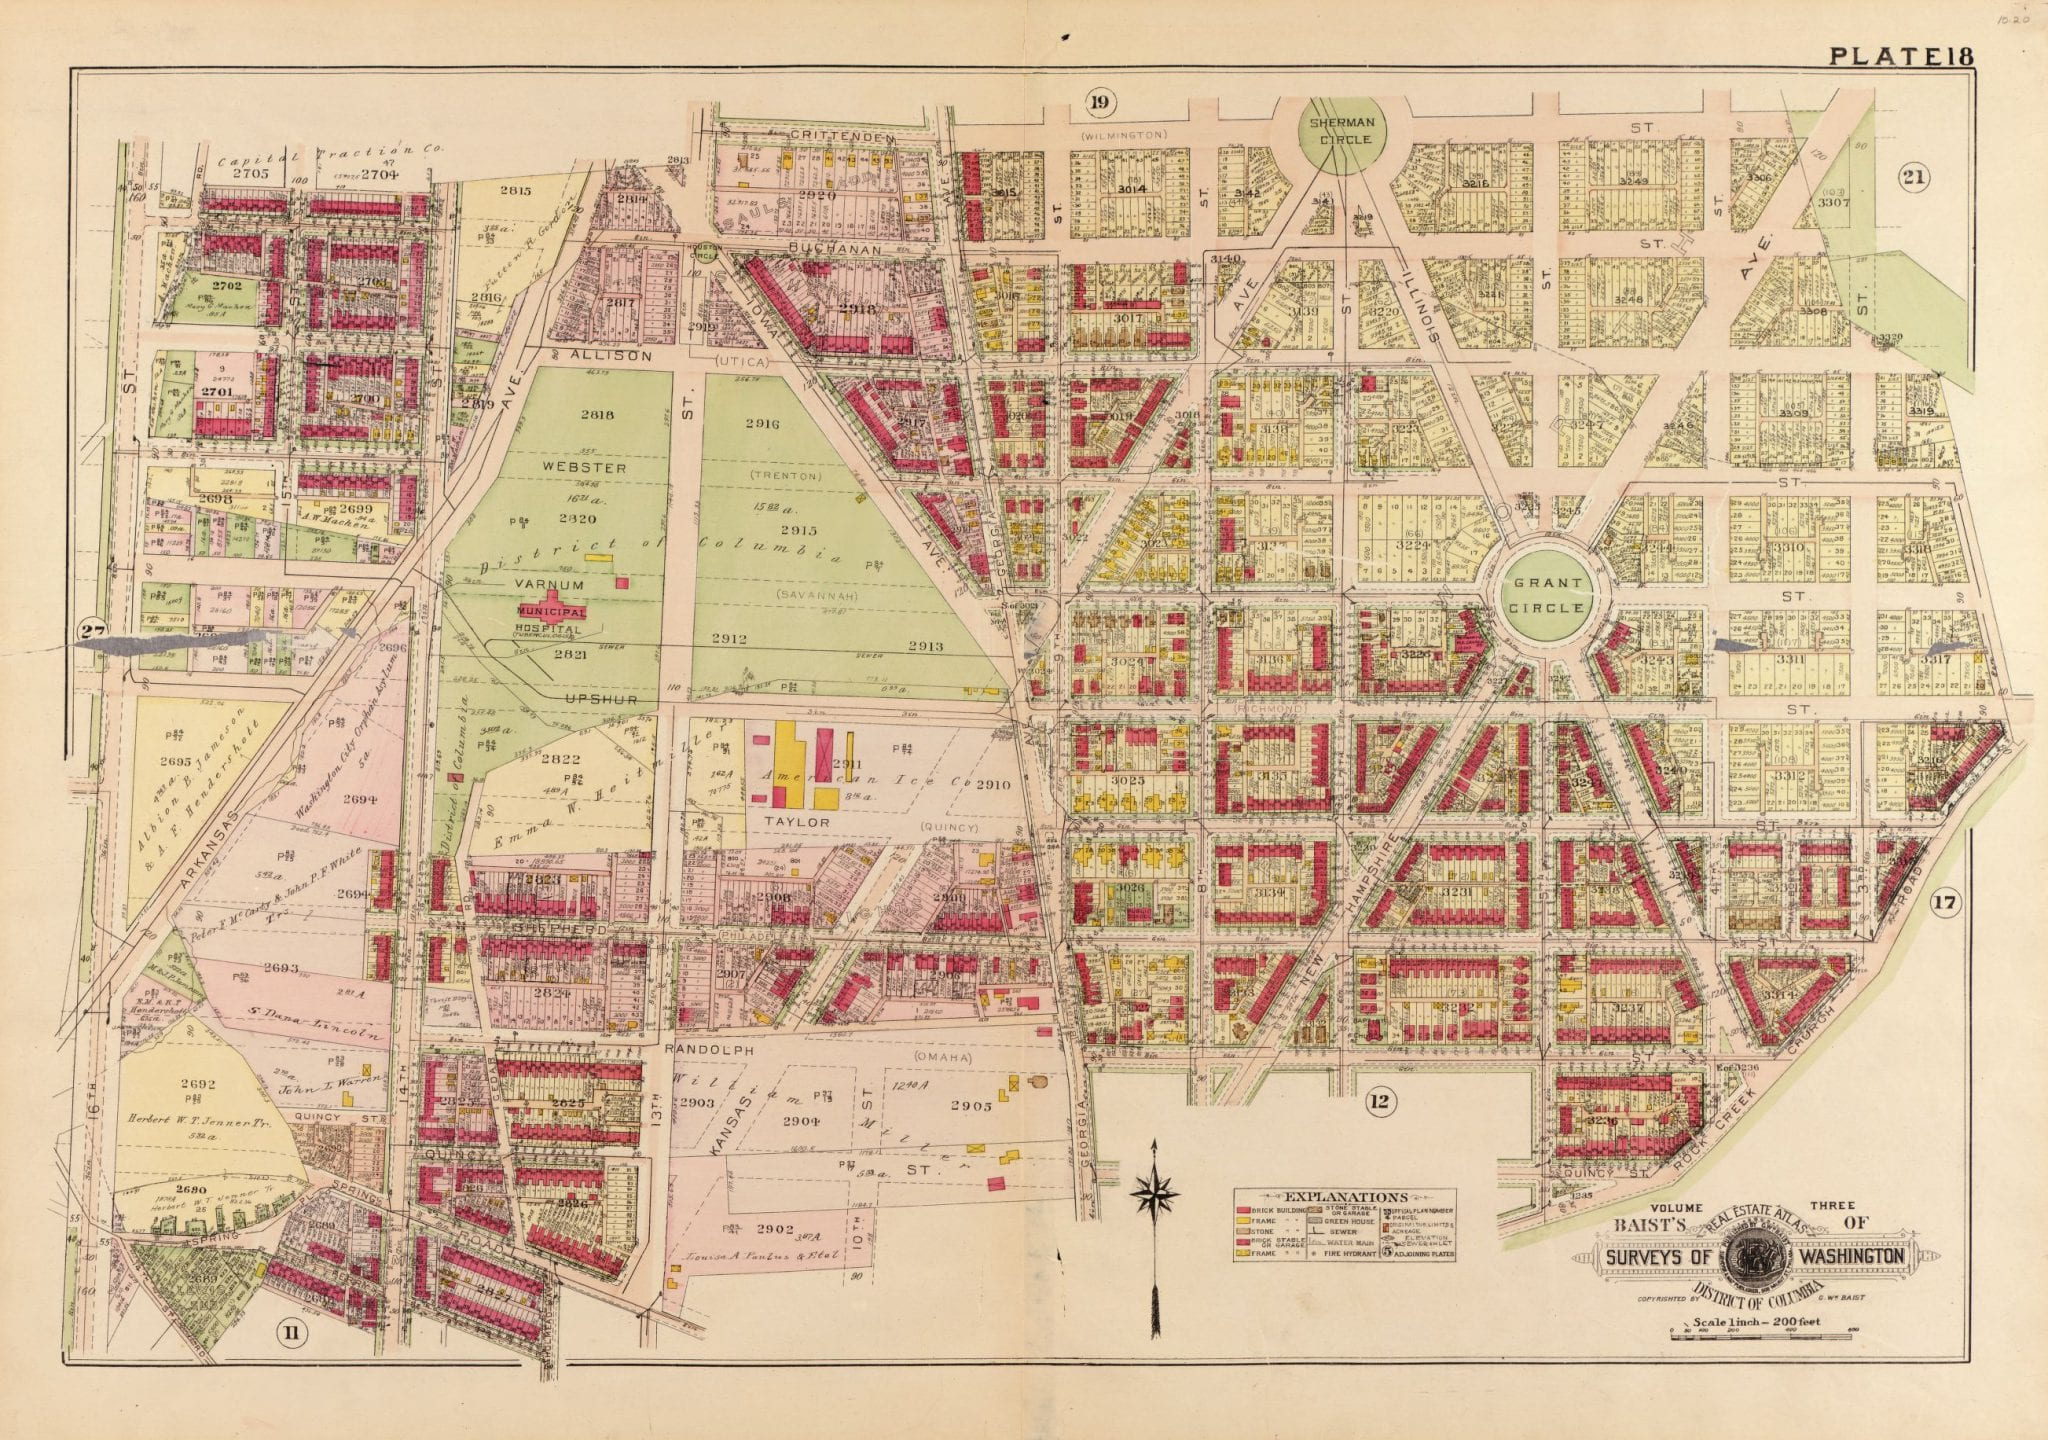 Maps of Petworth Development from 1903 to 1919